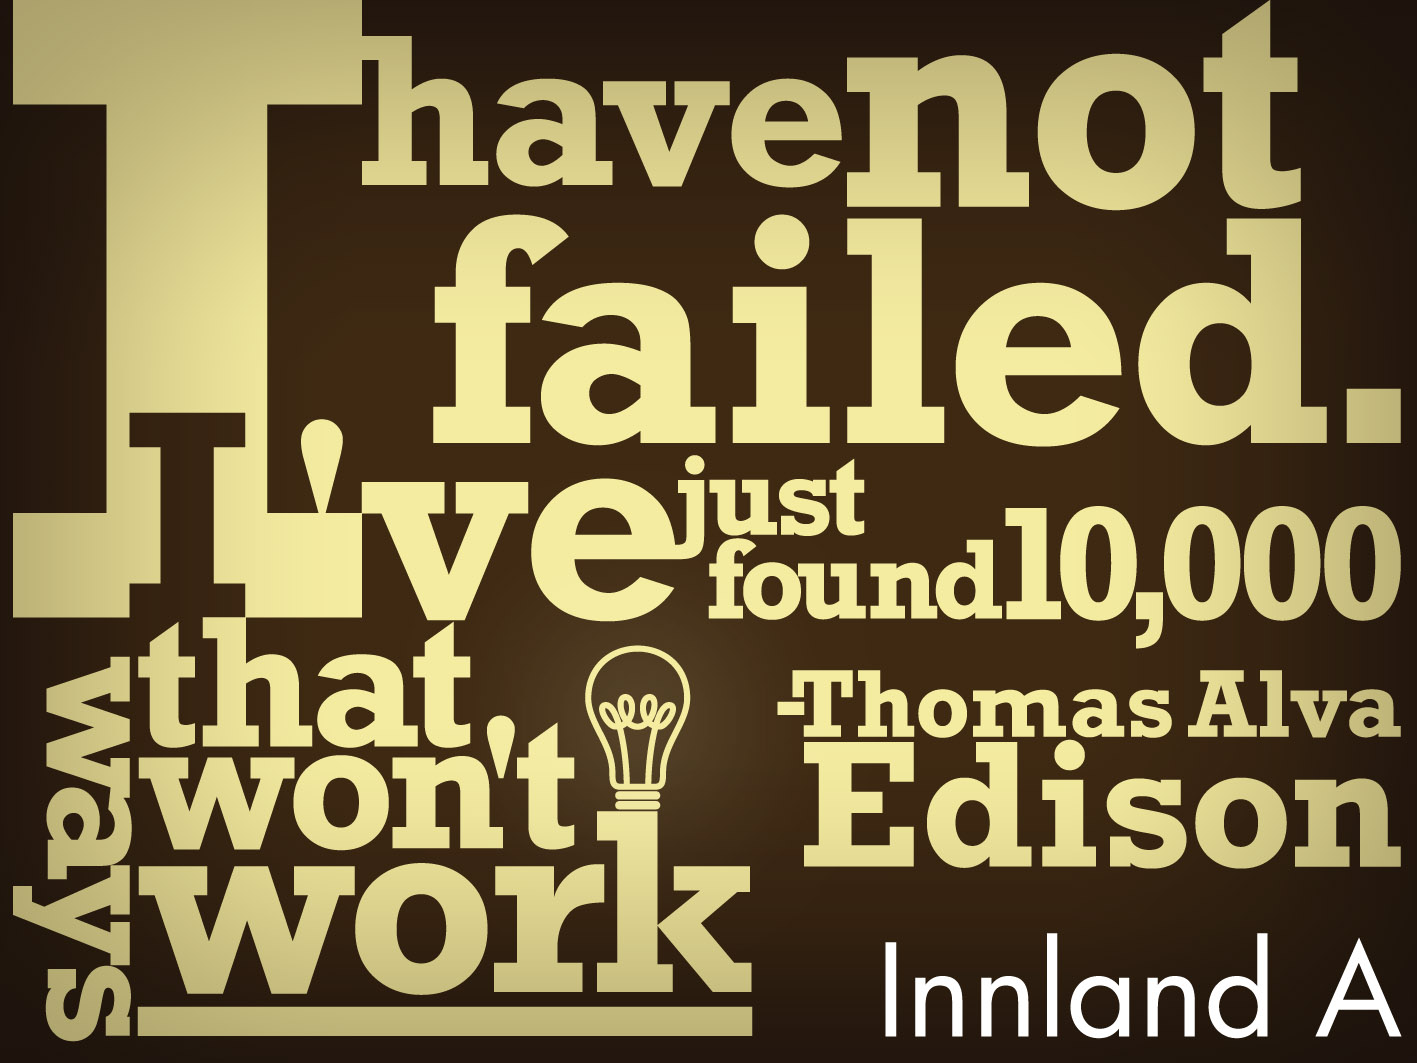 Thomas A. Edison's quote #5